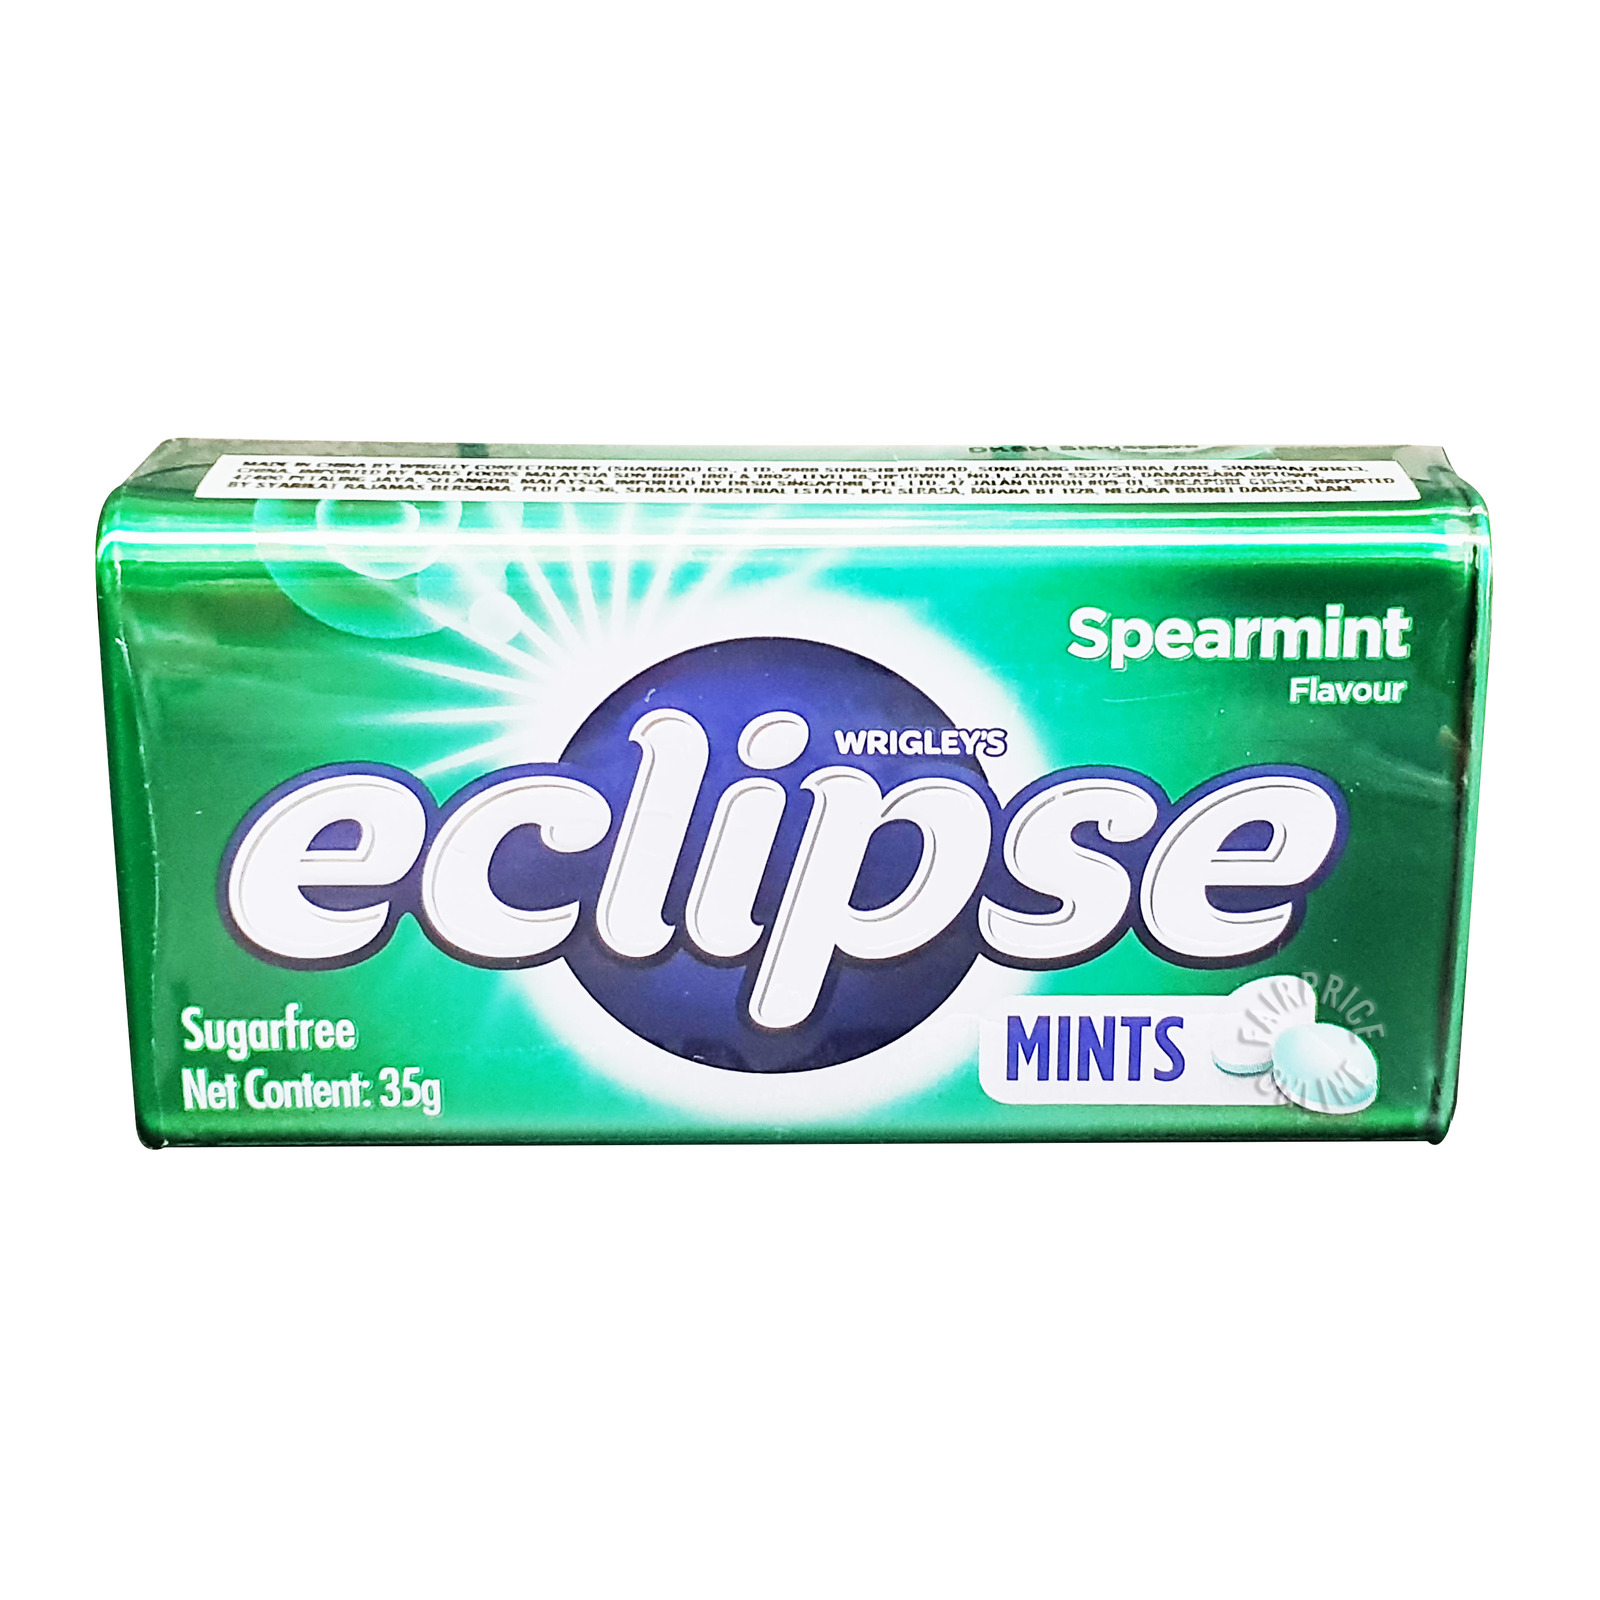 Wrigley's Eclipse Sugar Free Mints Candy - Spearmint